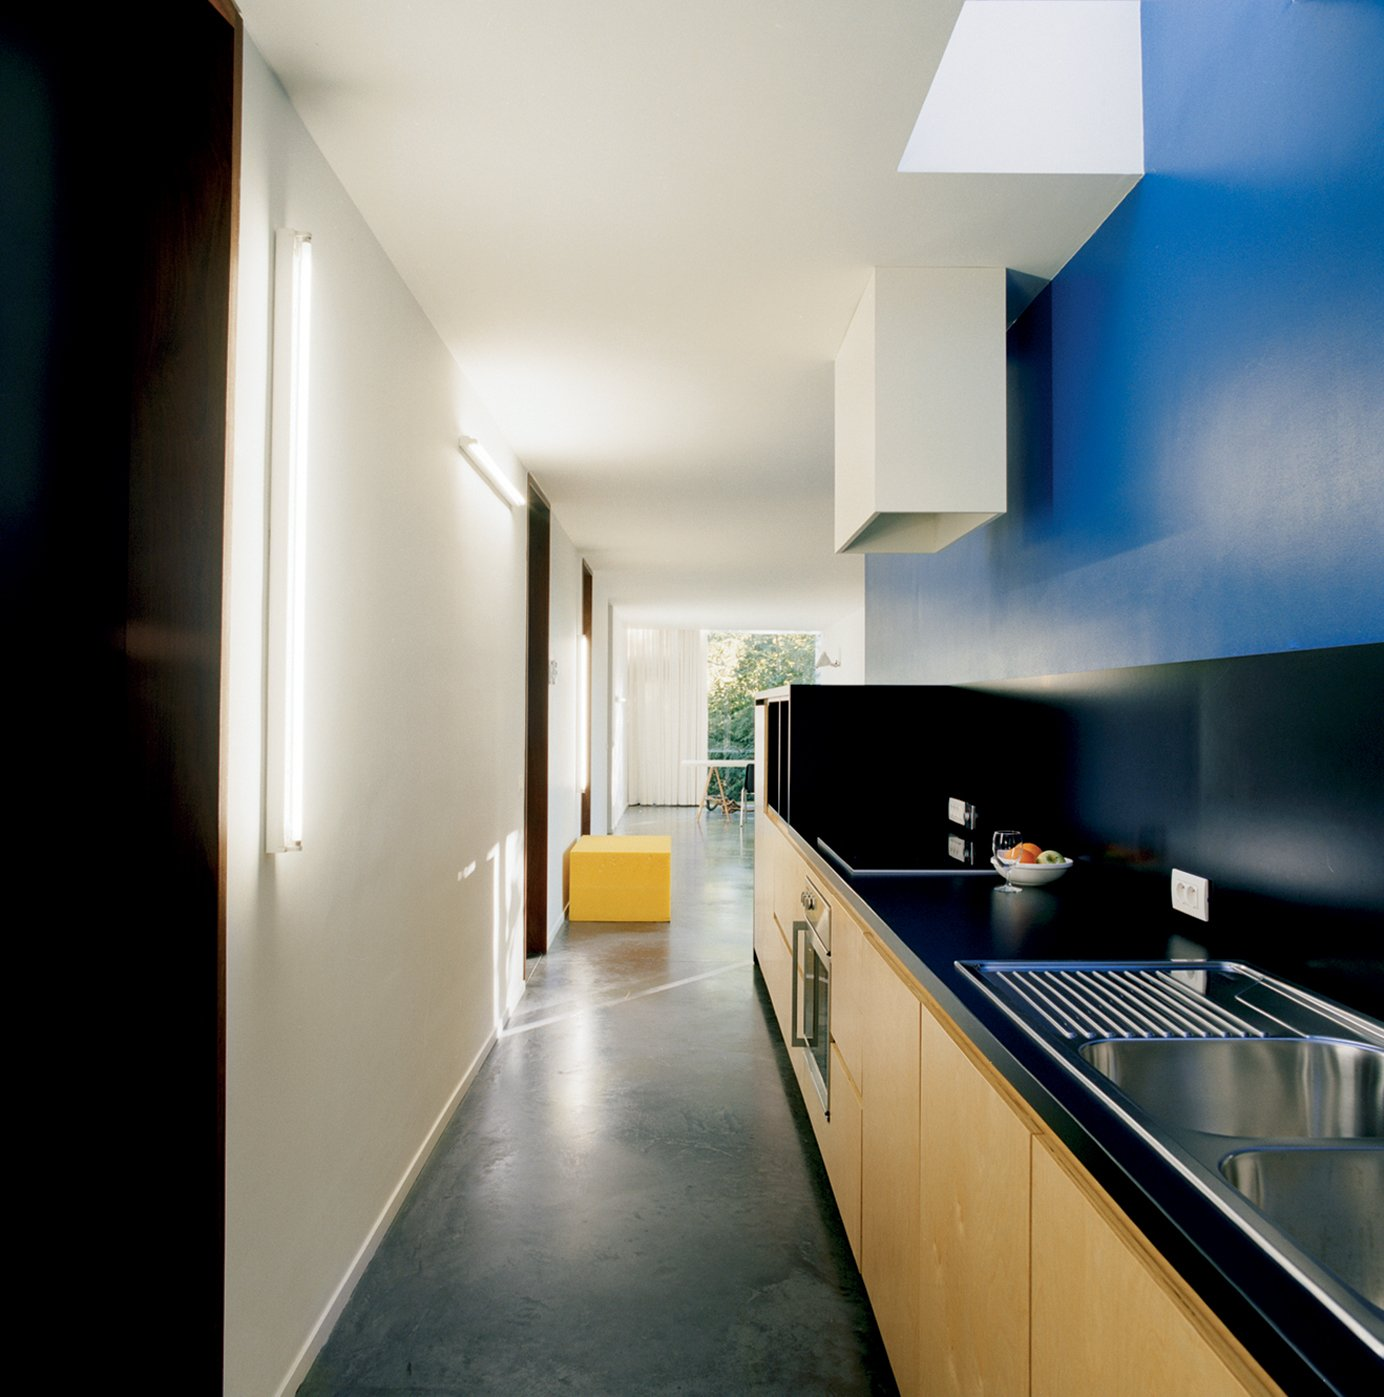 """Kitchen, Wood Cabinet, and Concrete Floor The kitchen is a vibrant deep blue. """"It's the same color Le Corbusier used in the corridor of his Villa Savoye in Poissy,"""" Van Everbroeck reports.  Photos from The Tree of Ghent"""